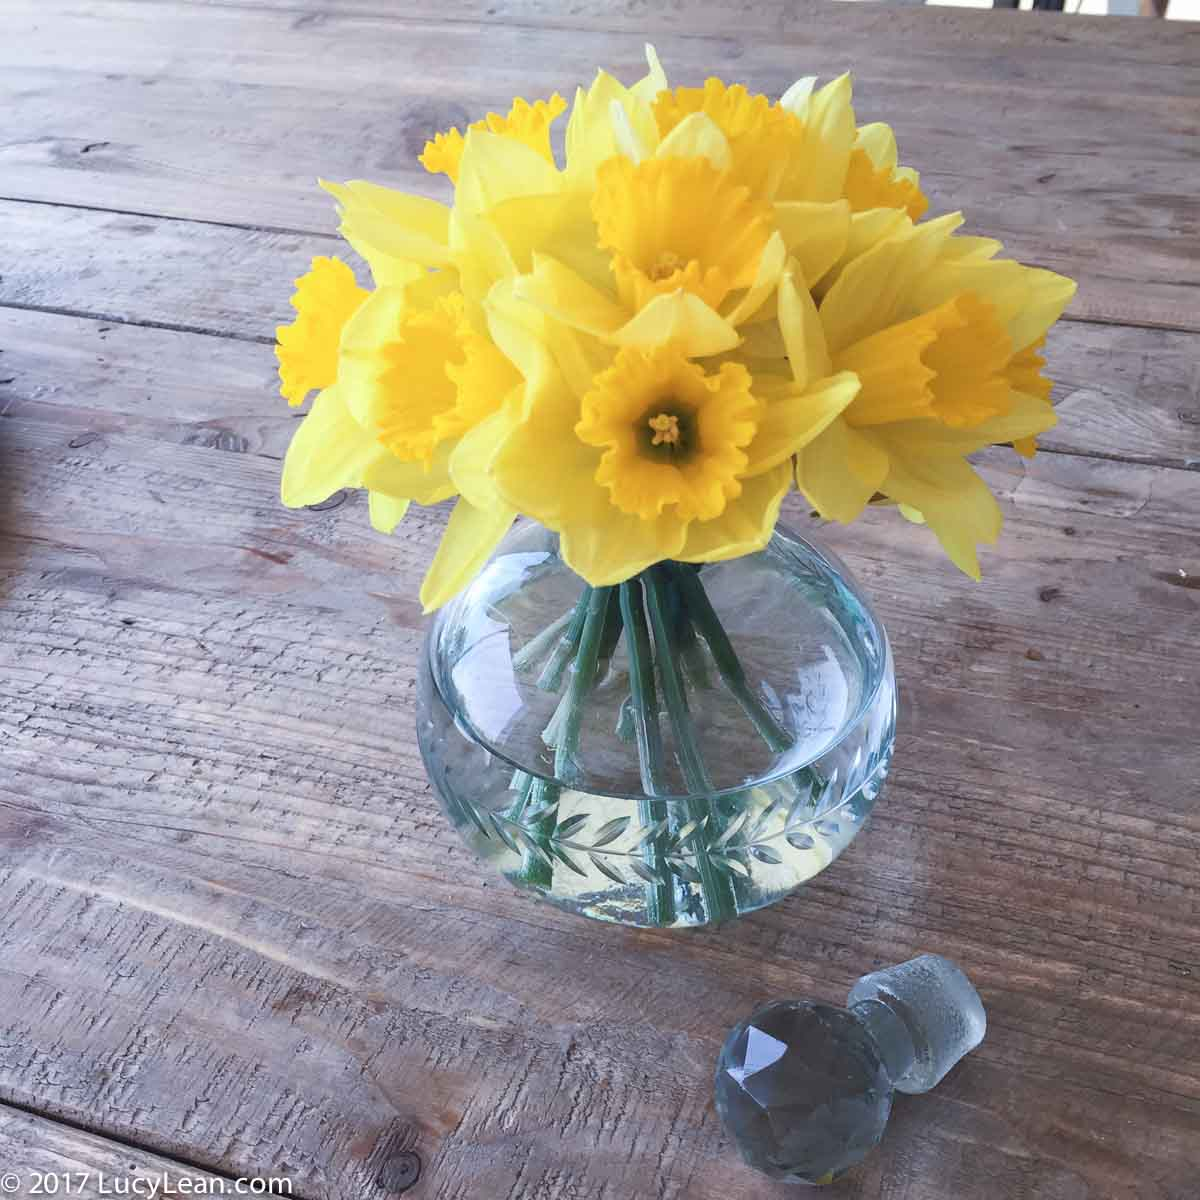 Rosé Corner - Easy Entertaining at Home Lucy Lean Daffodils